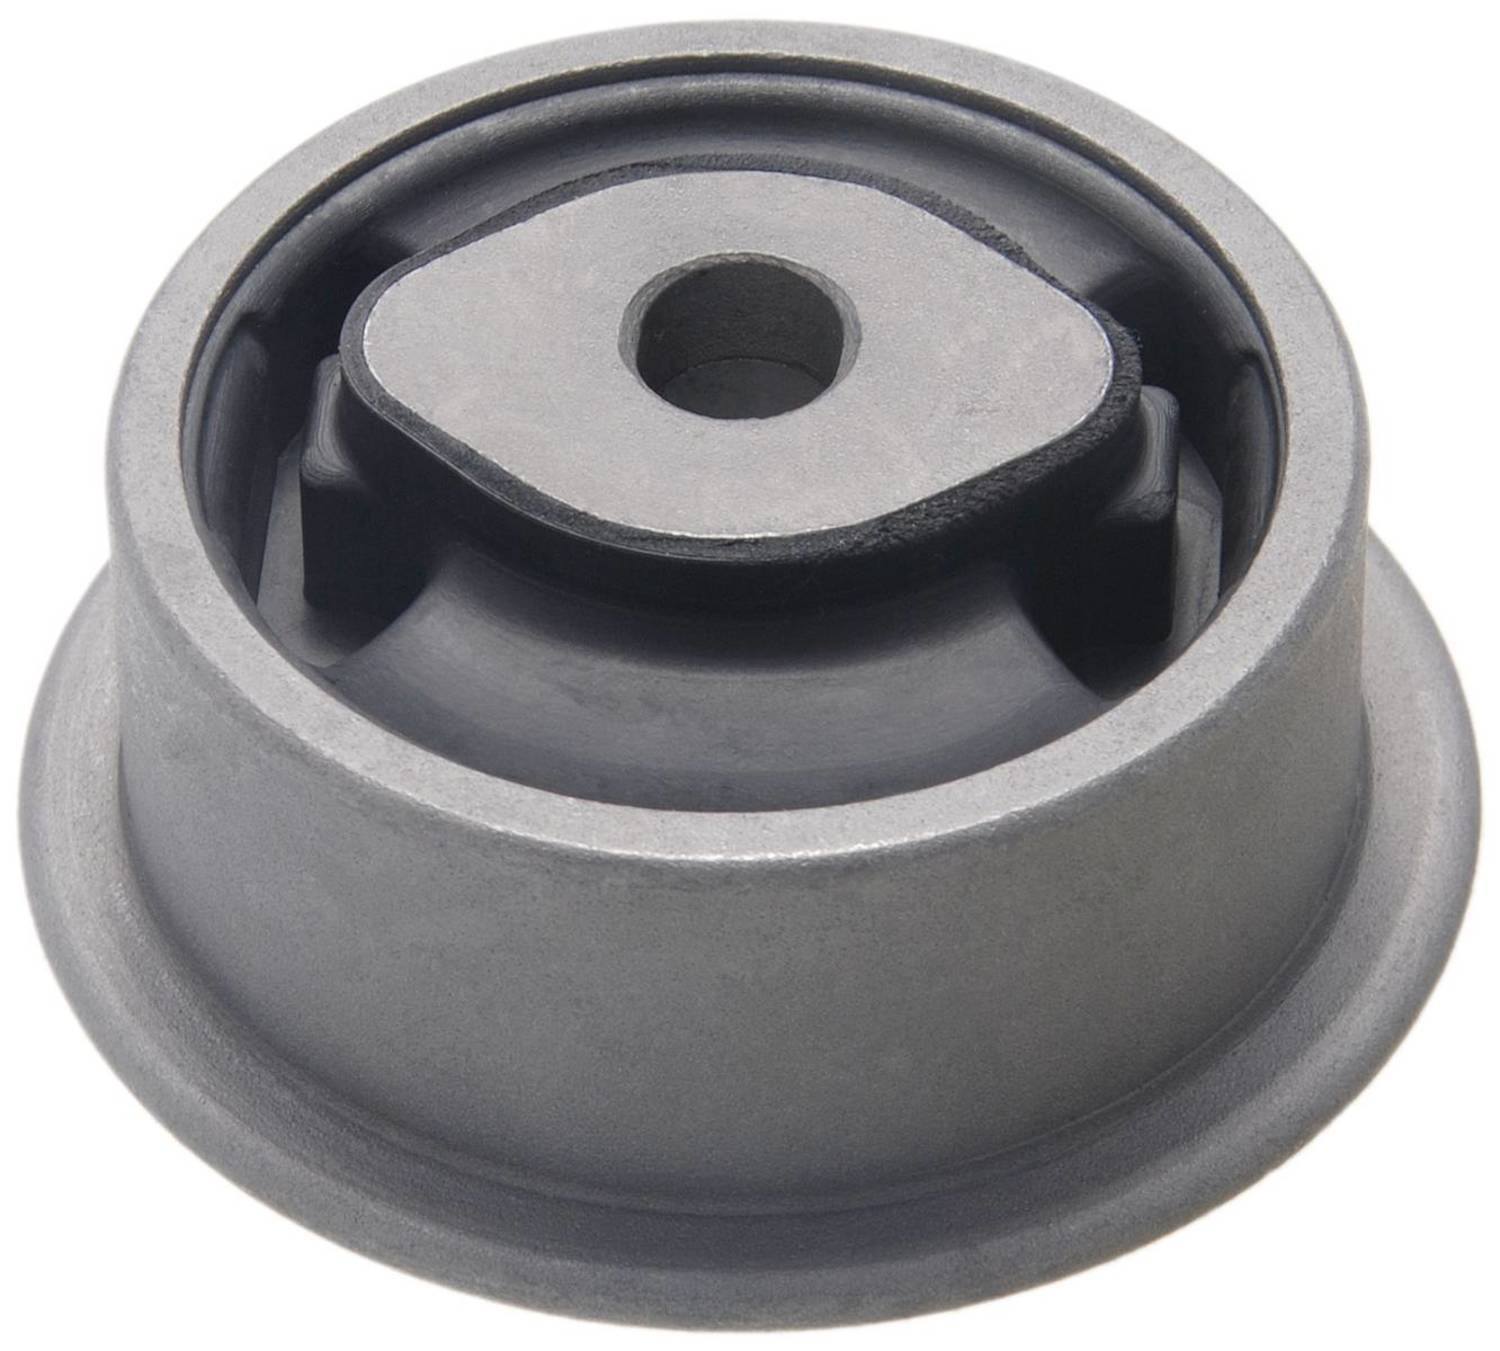 Differential Mount Bushing Rear Febest TAB-520 fits 07-16 Lexus LS460 4.6L-V8